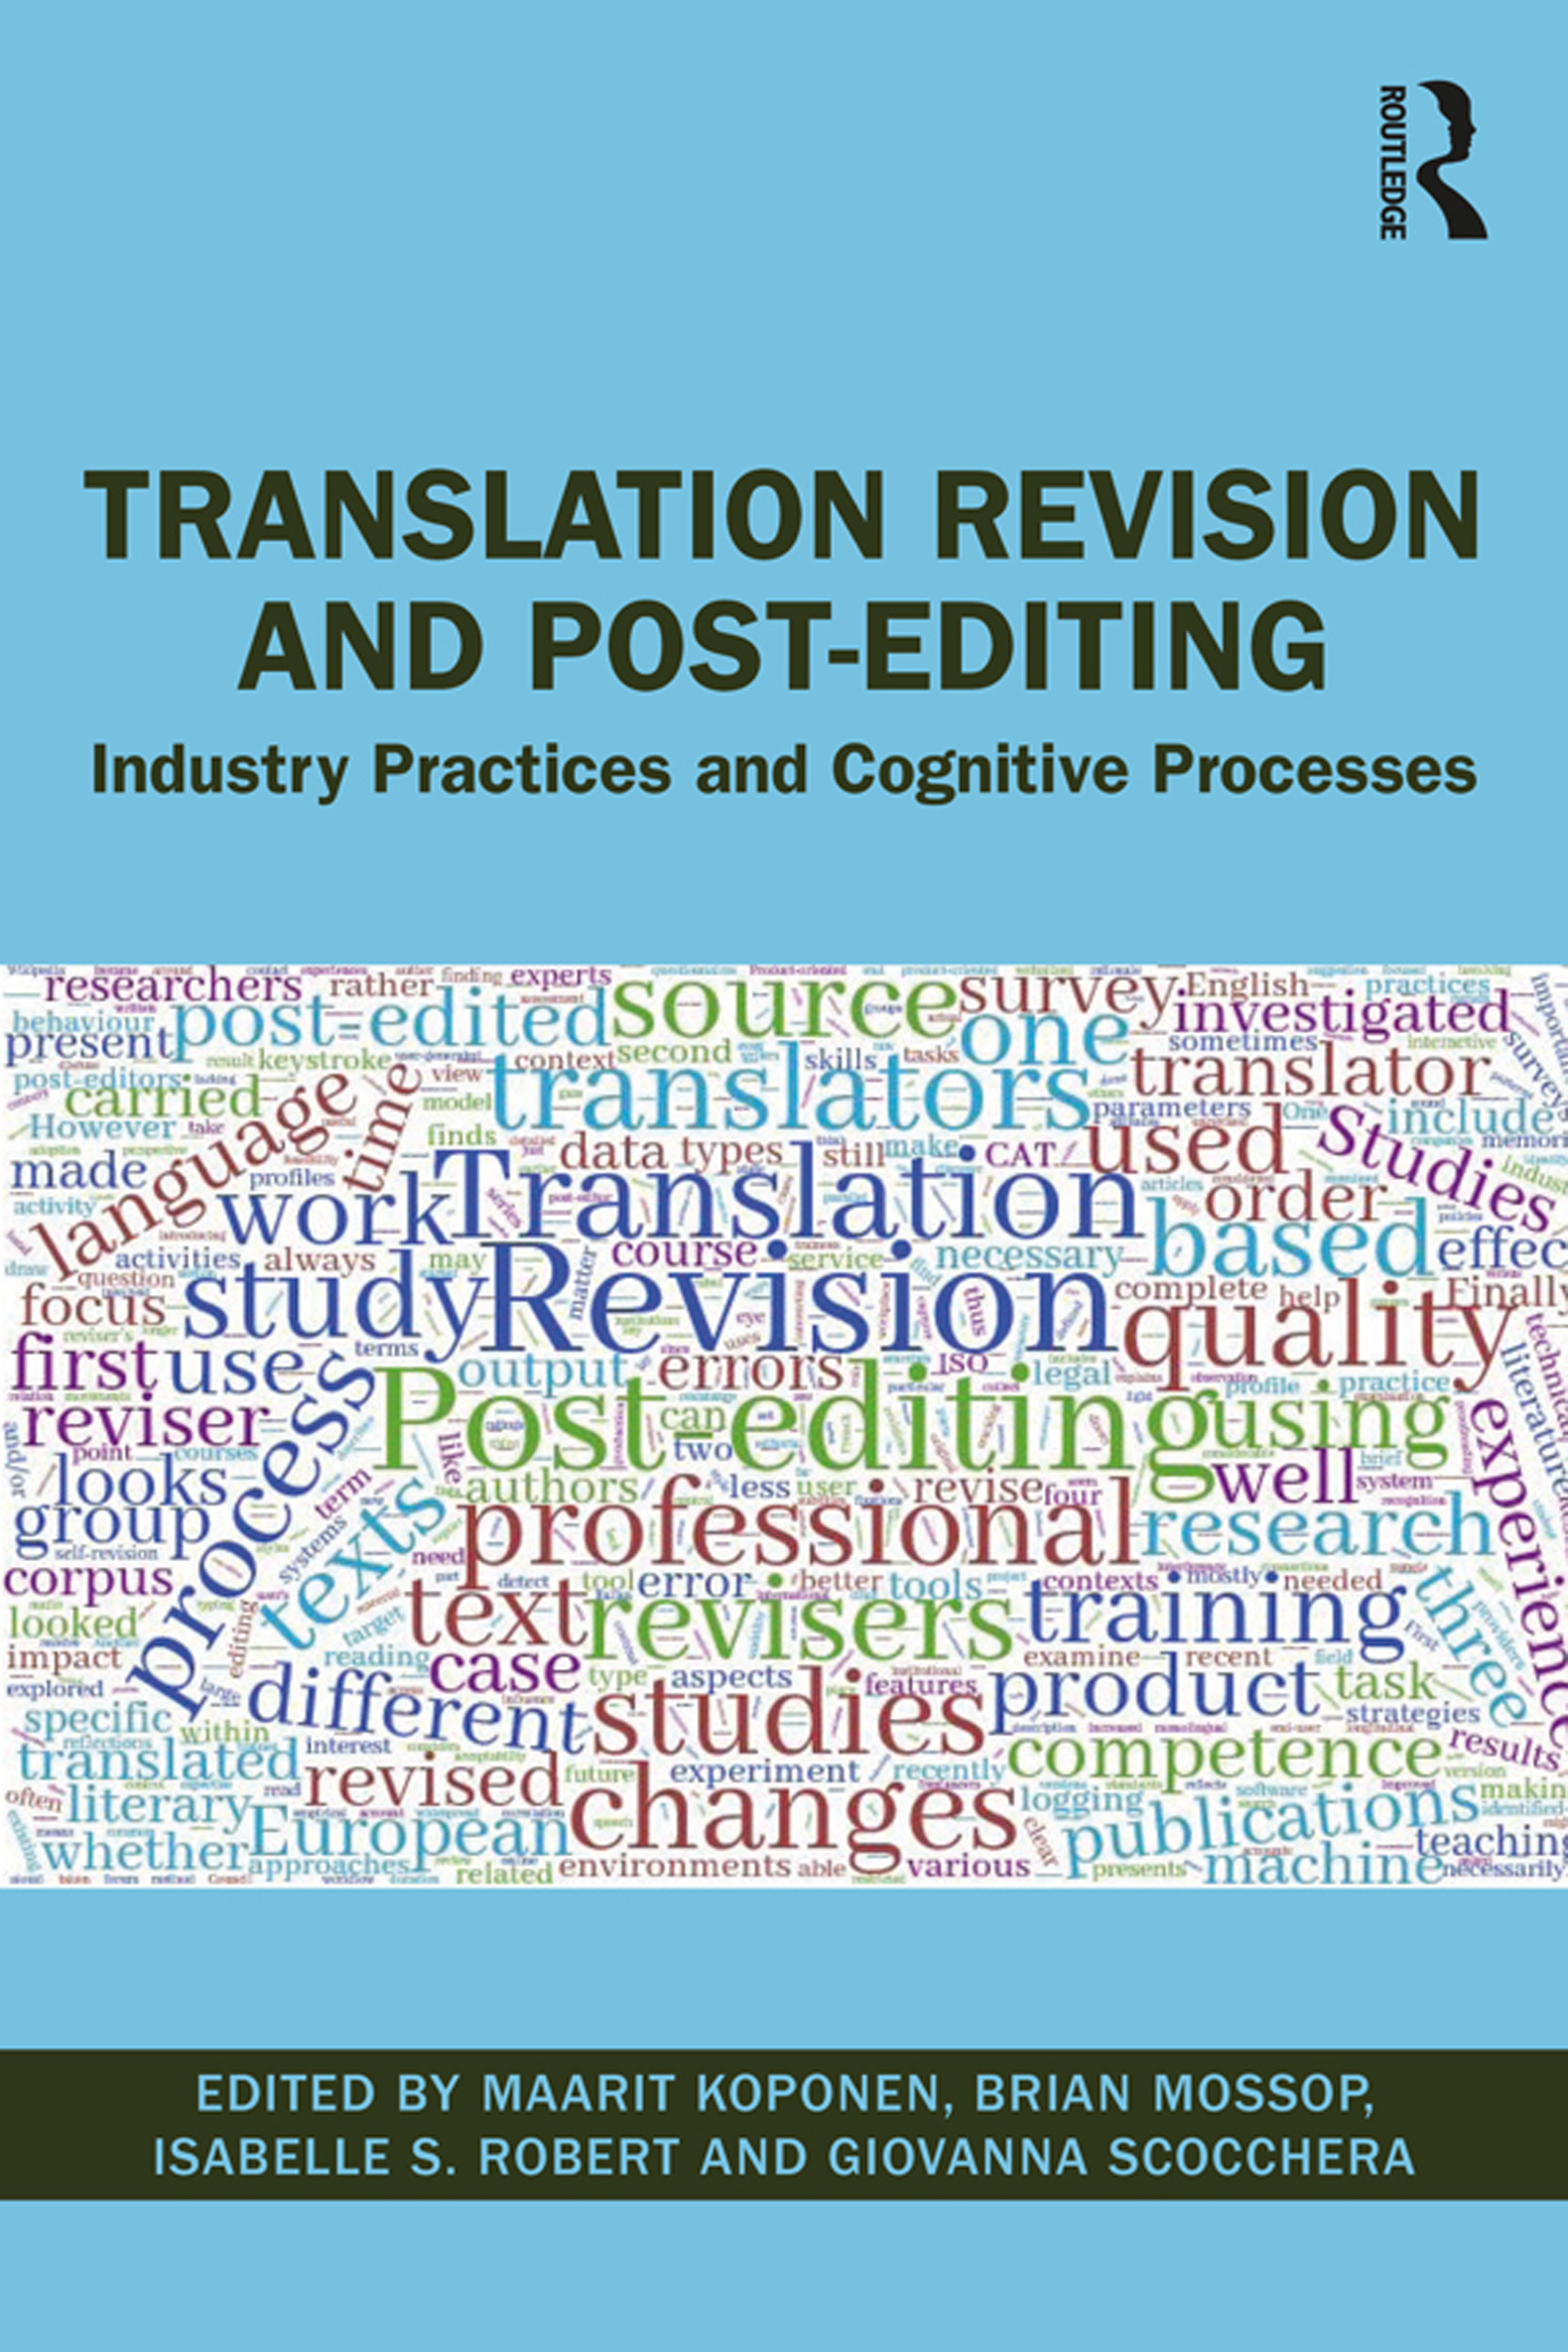 Another Look at Revision in Literary Translation